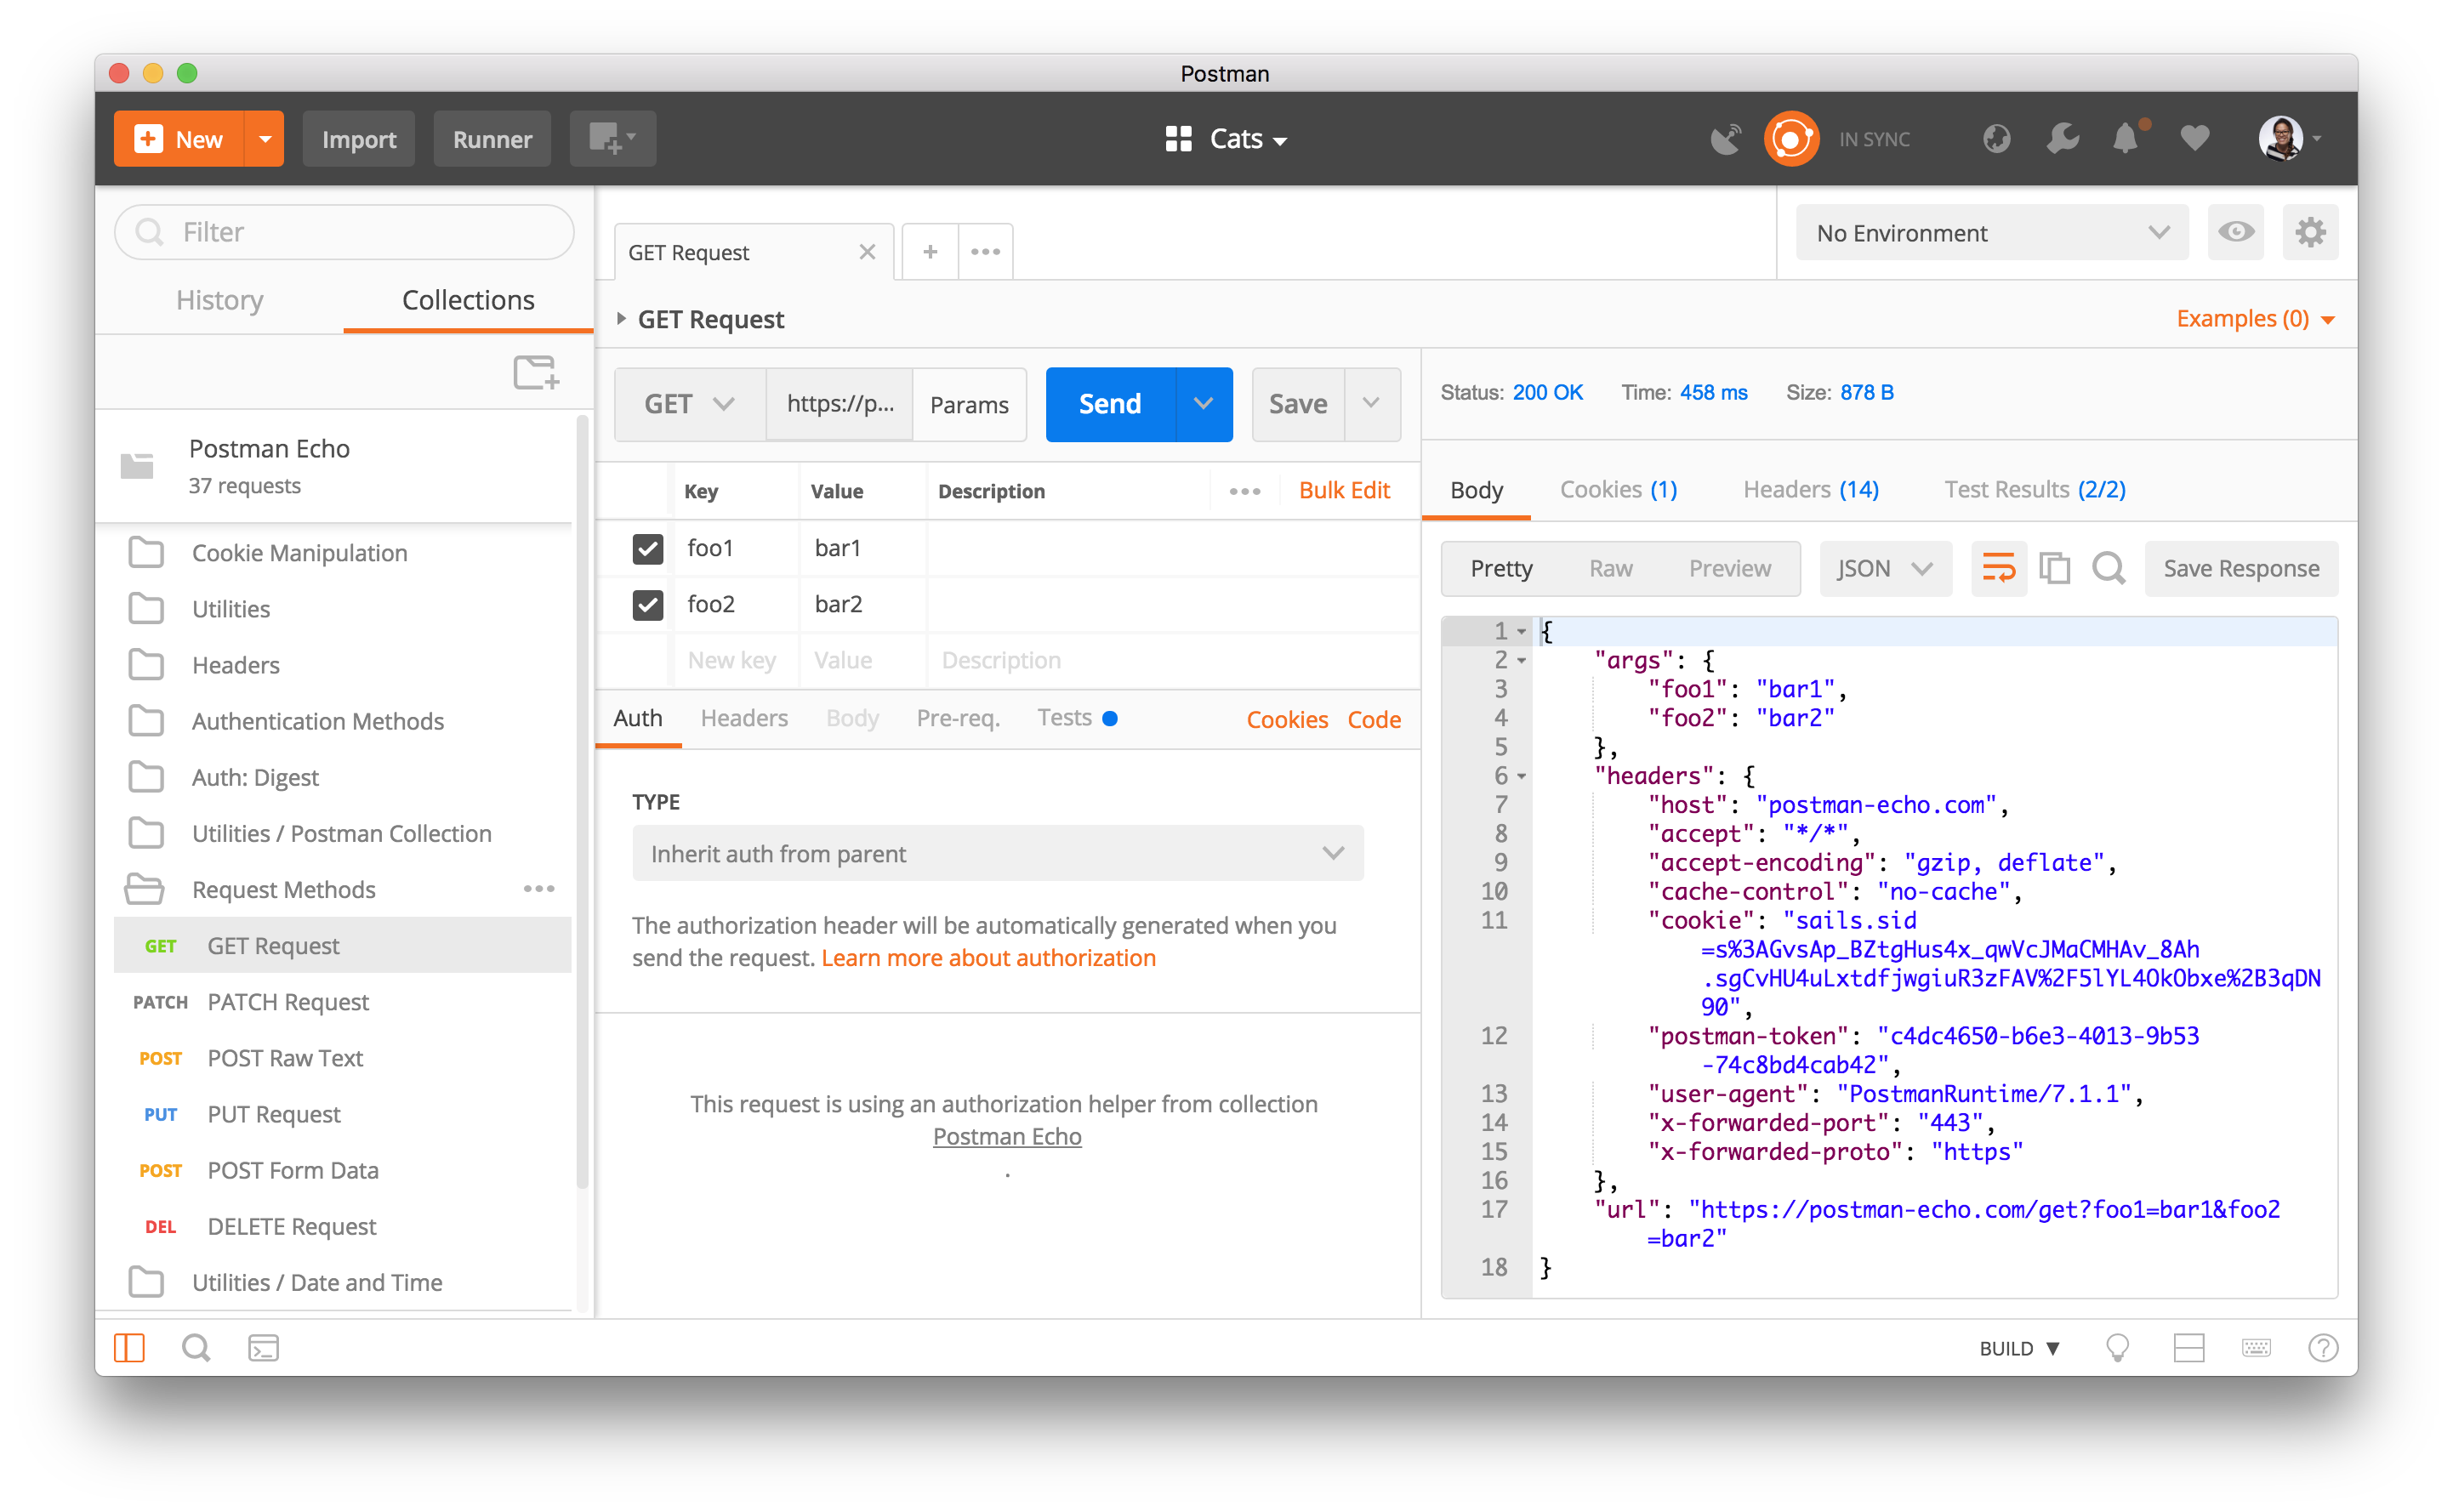 First 5 things to try if you're new to Postman - Postman Blog